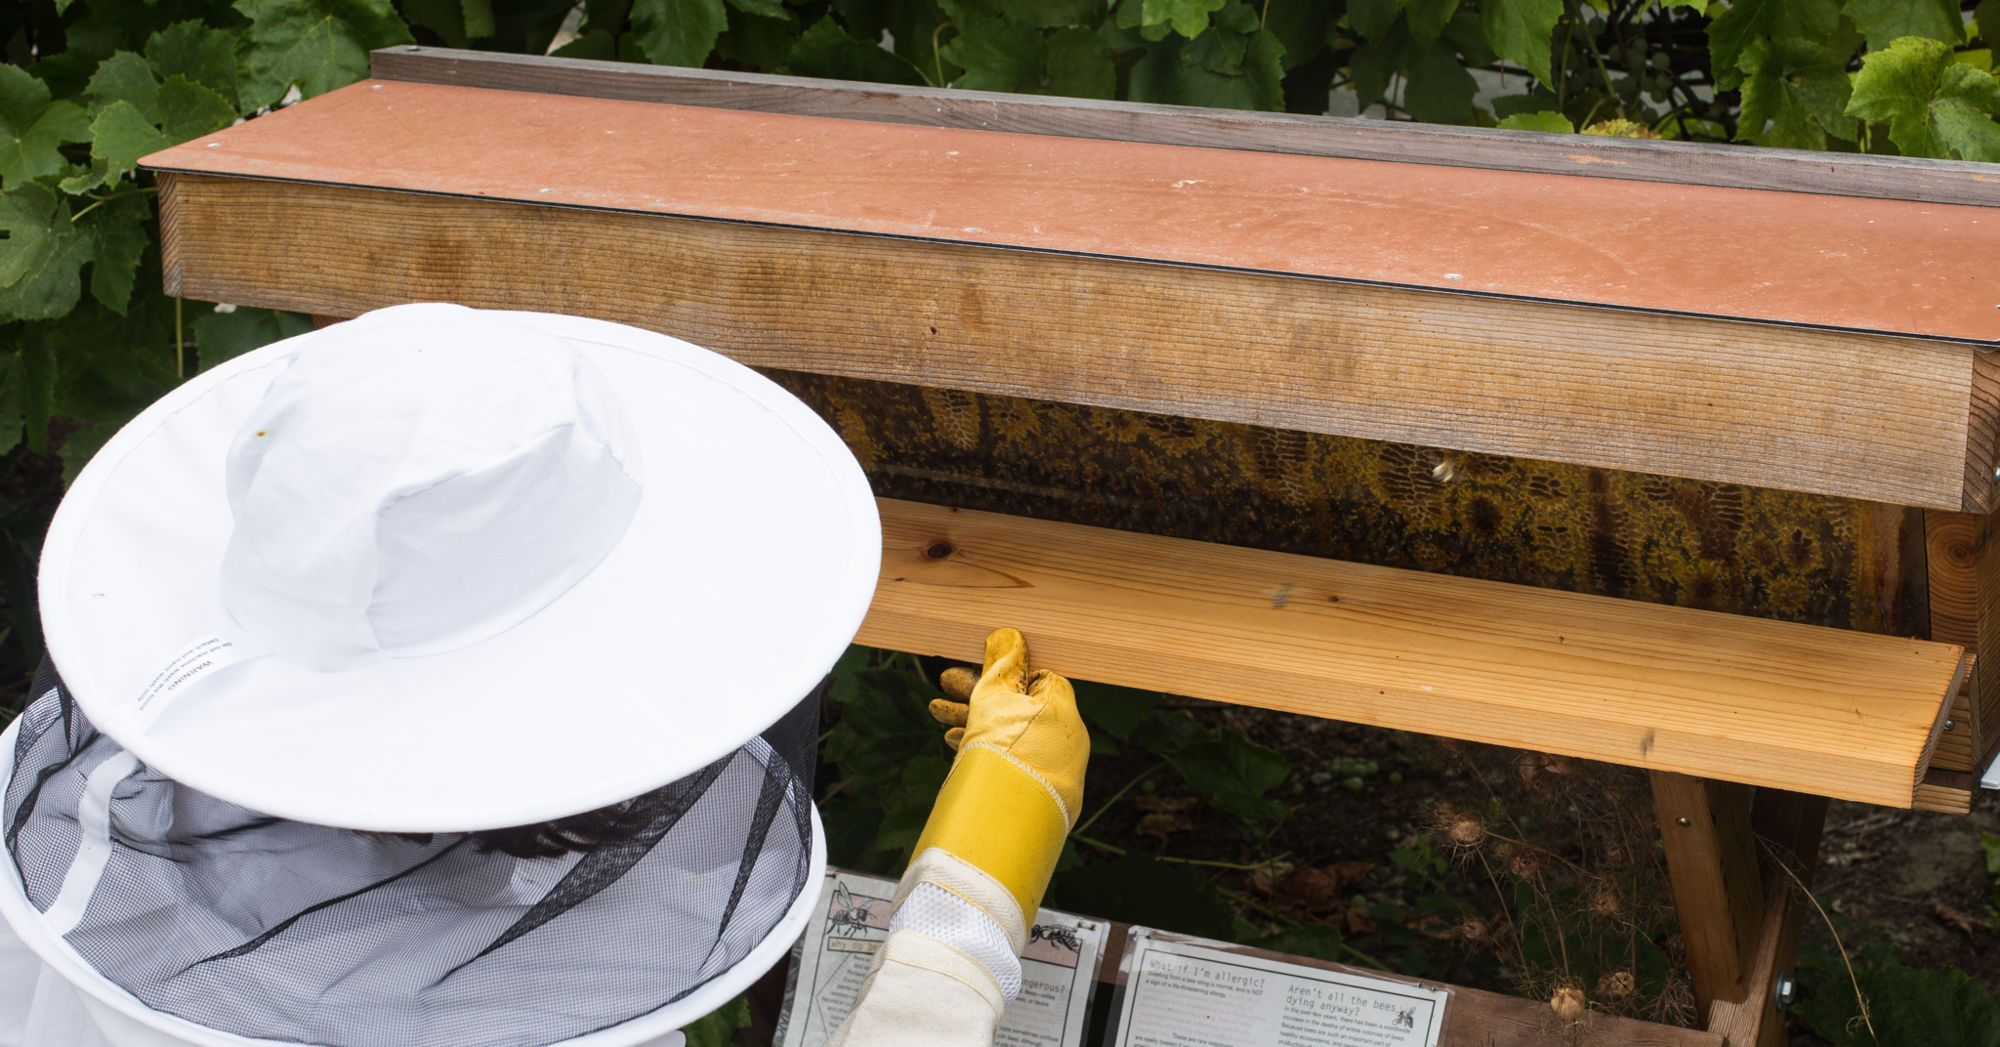 Our Top Bar Hives Have 3 Entrances On The Backboard Of The Hive Body To  Allow Beekeepers To Expand Their Hive In The Direction Most Convenient To  Them.